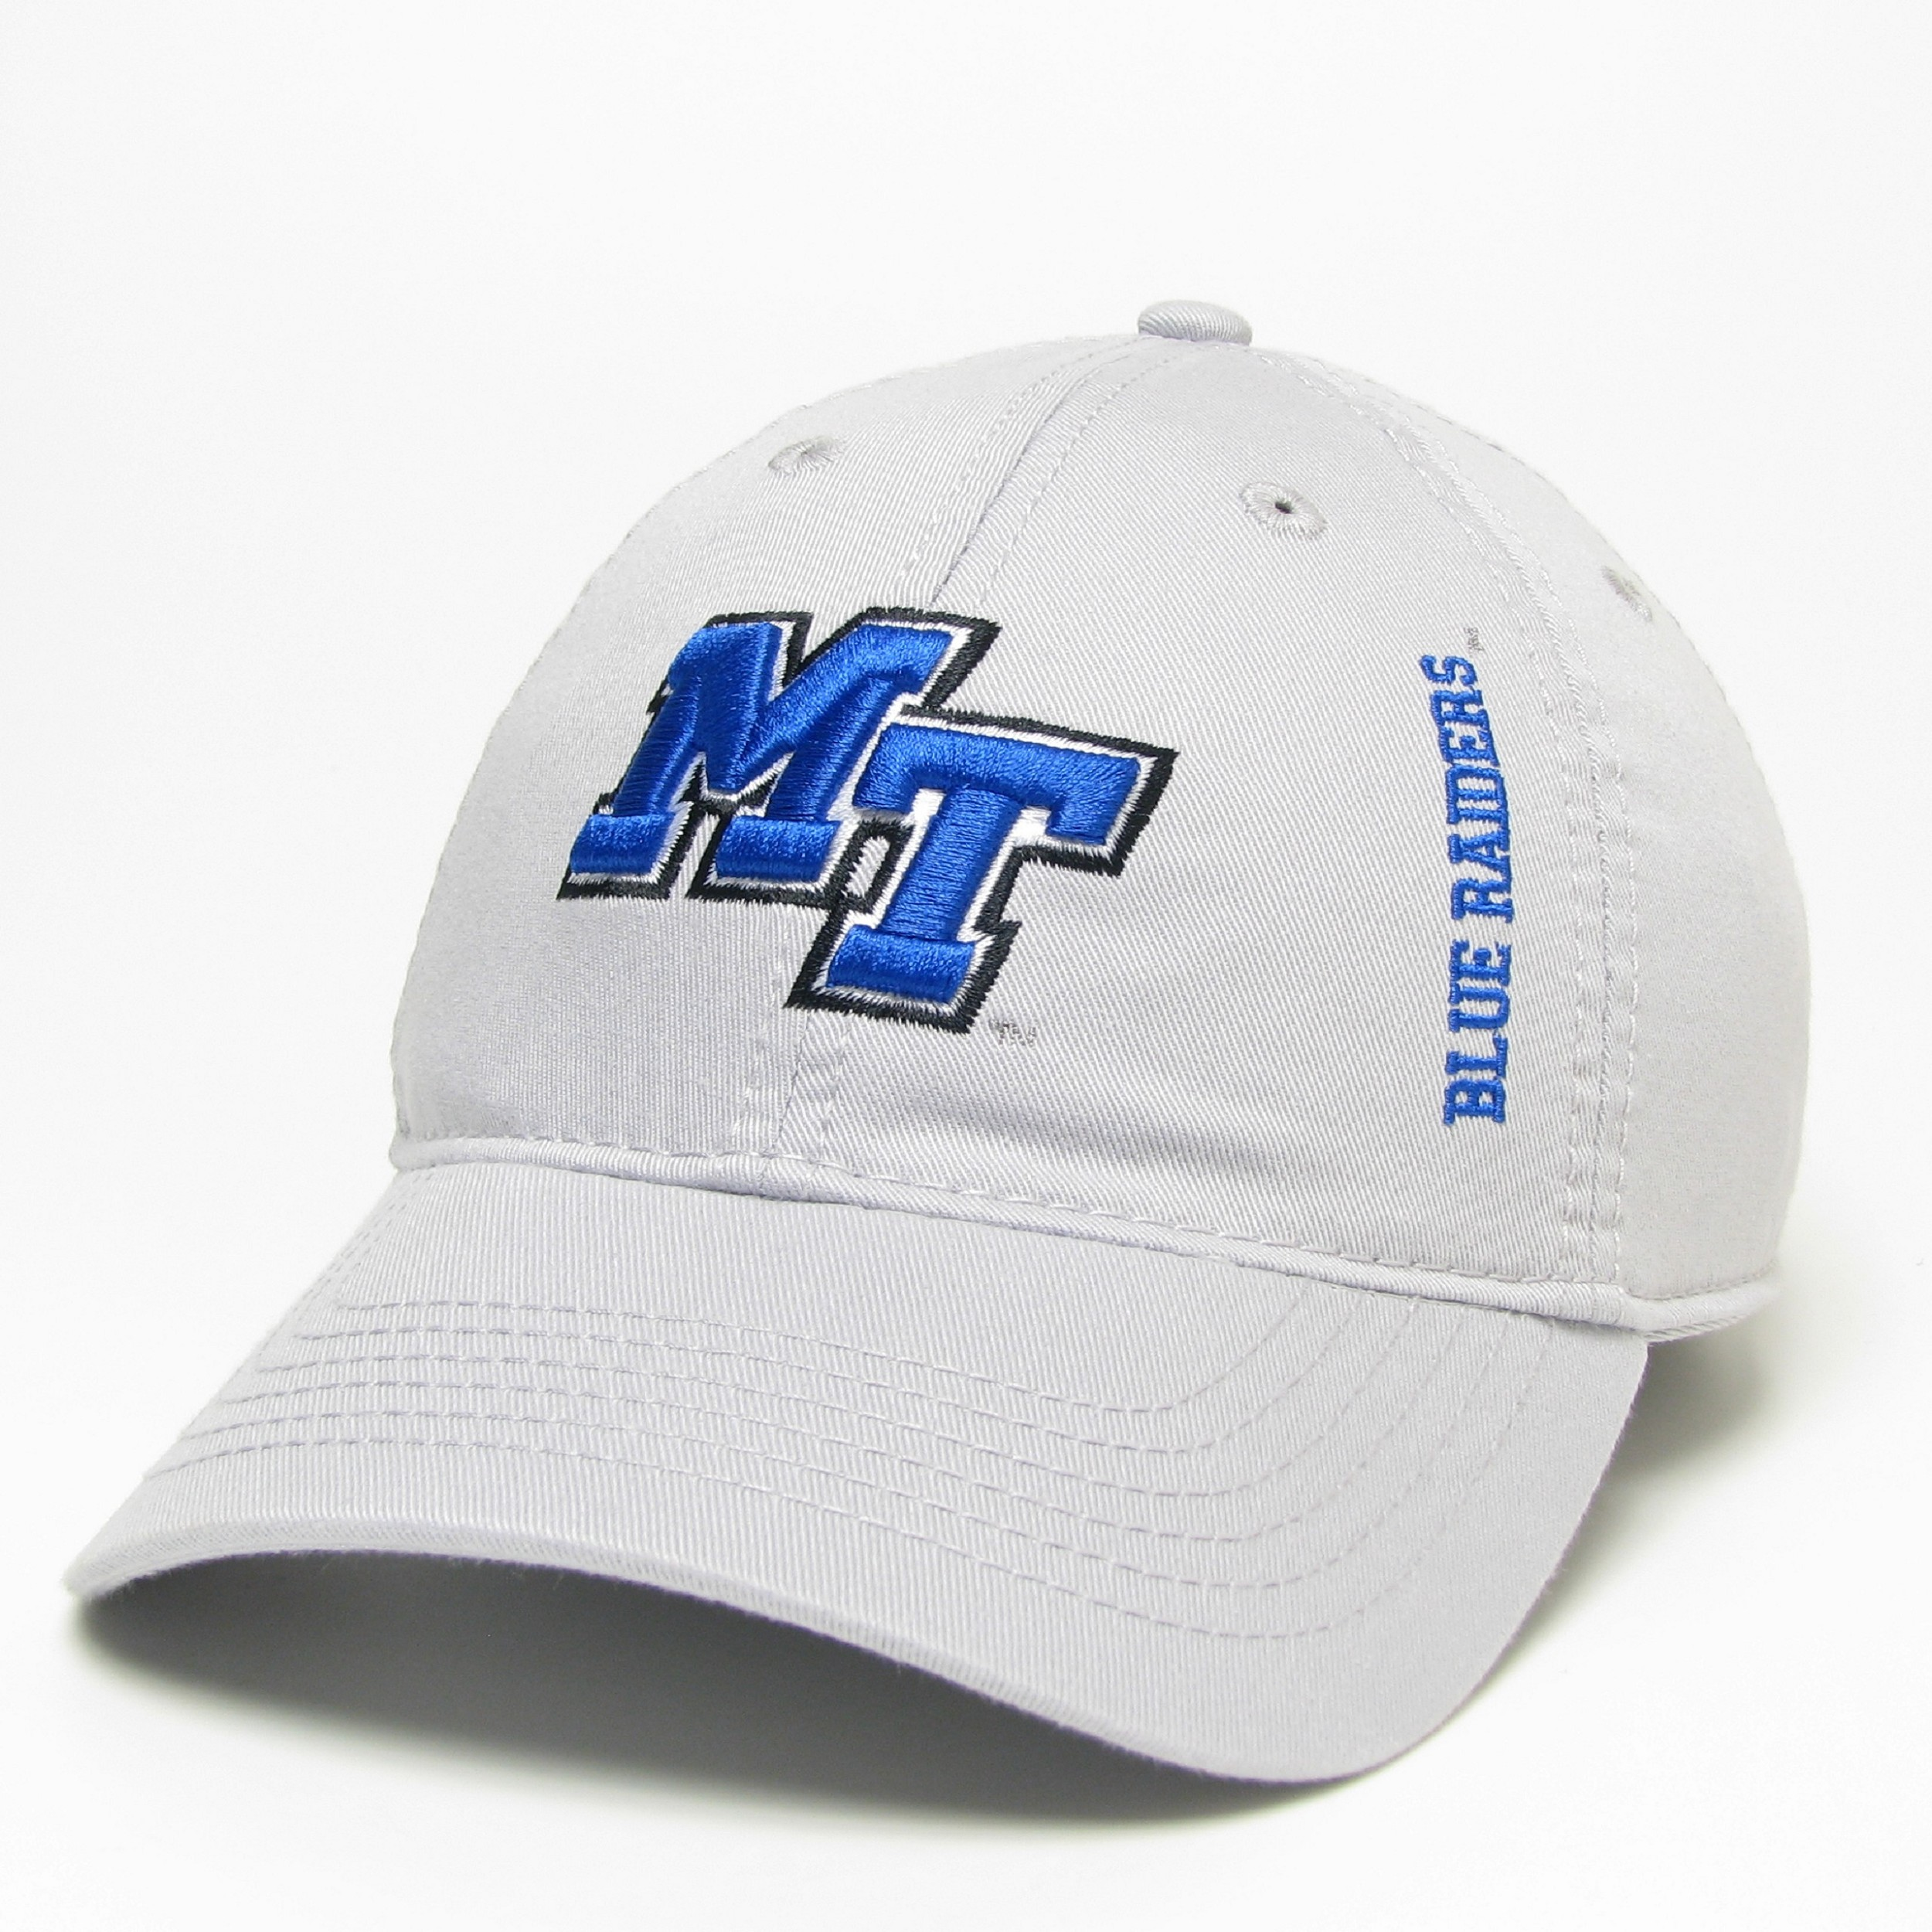 MT Blue Raiders Relaxed Twill Hat